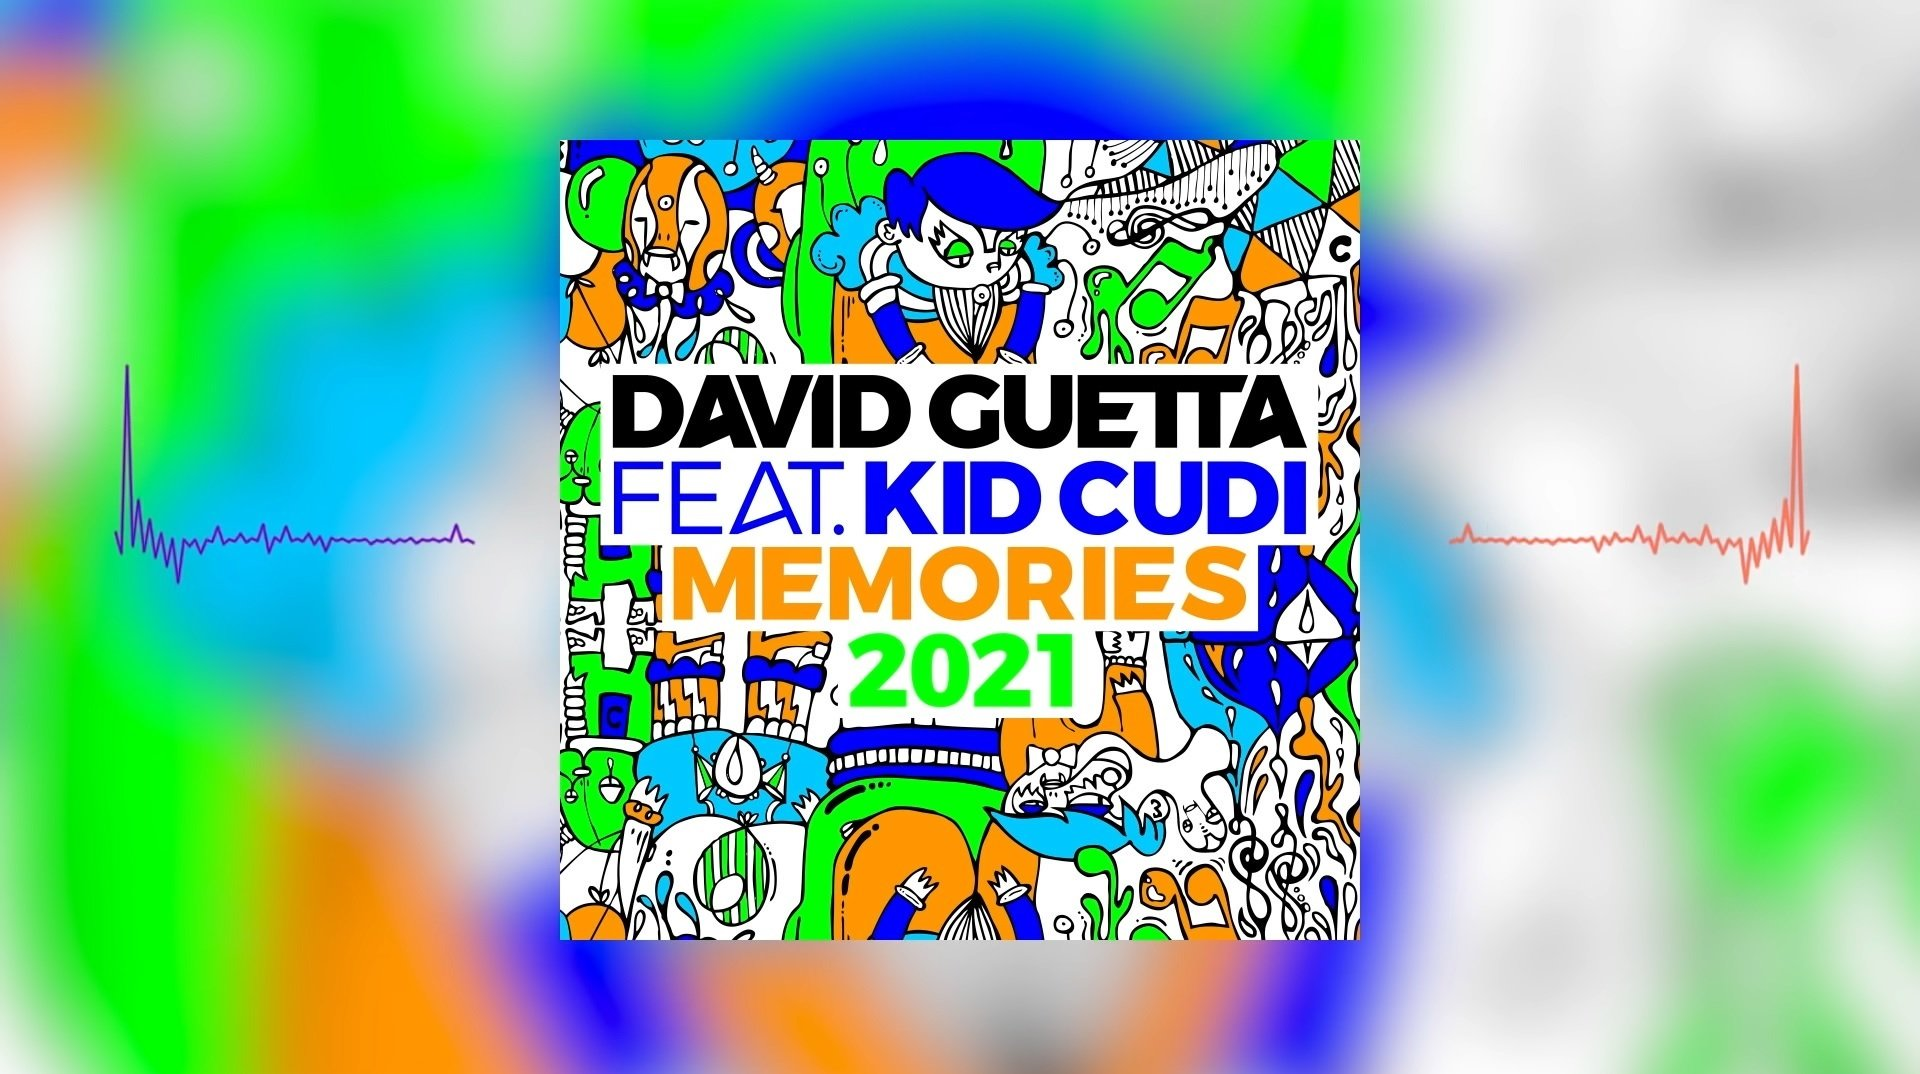 David Guetta Memories ft. Kid Cudi2021